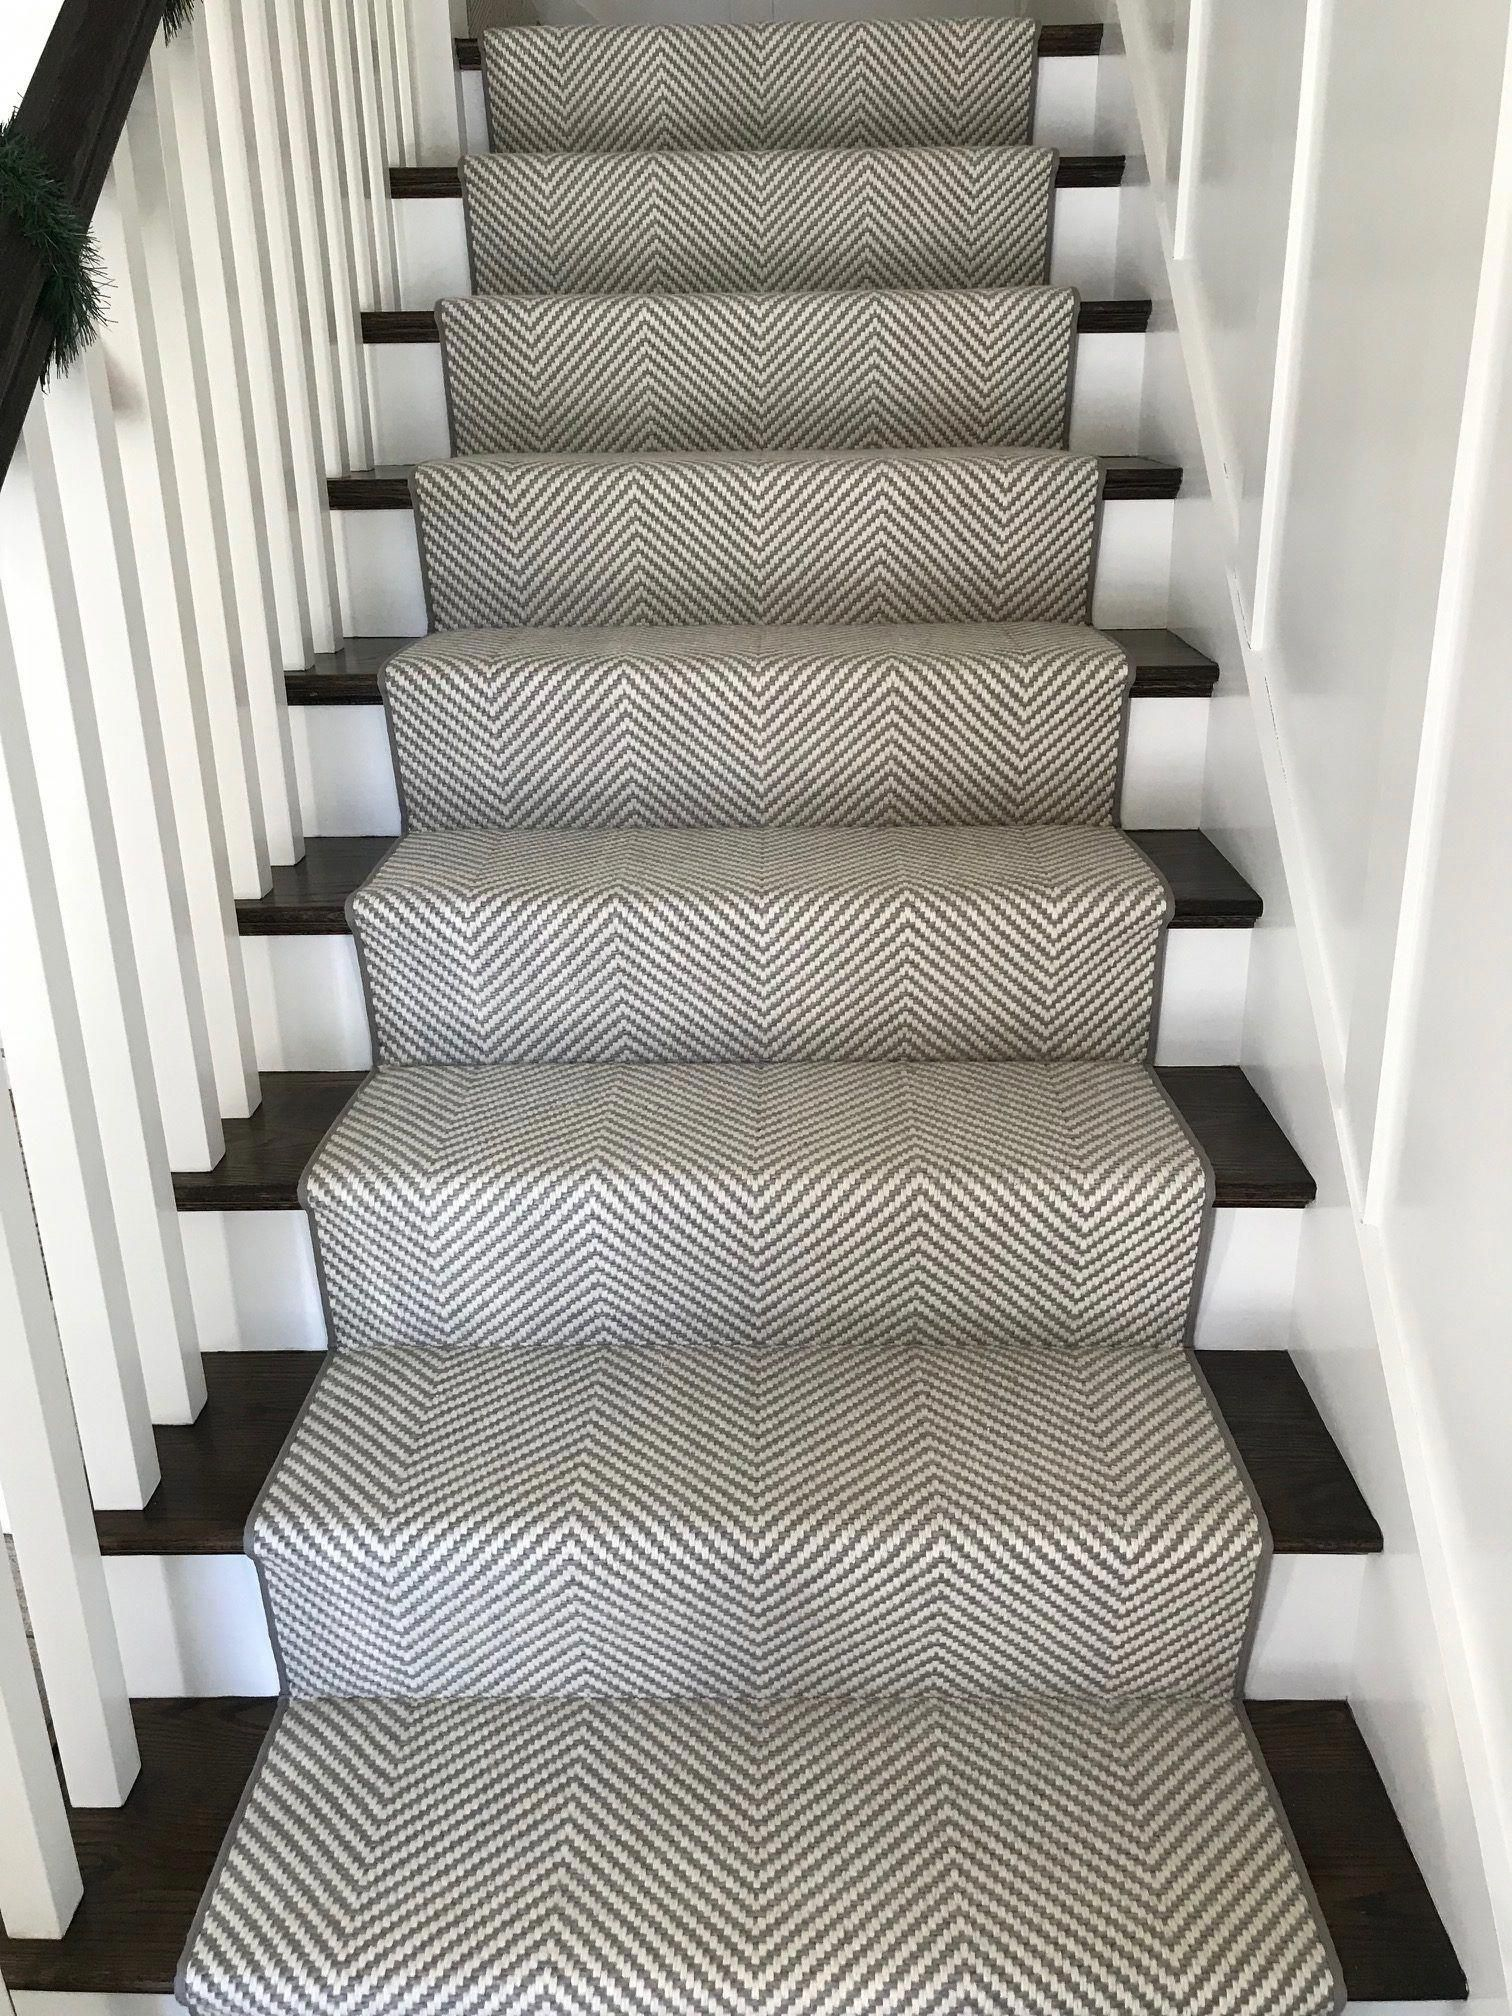 Carpet Runners At Home Depot Carpetrunnersgianttiger Id | Modern Carpet Runners For Stairs | Geometric | Design | White | Curved | Kitchen Modern